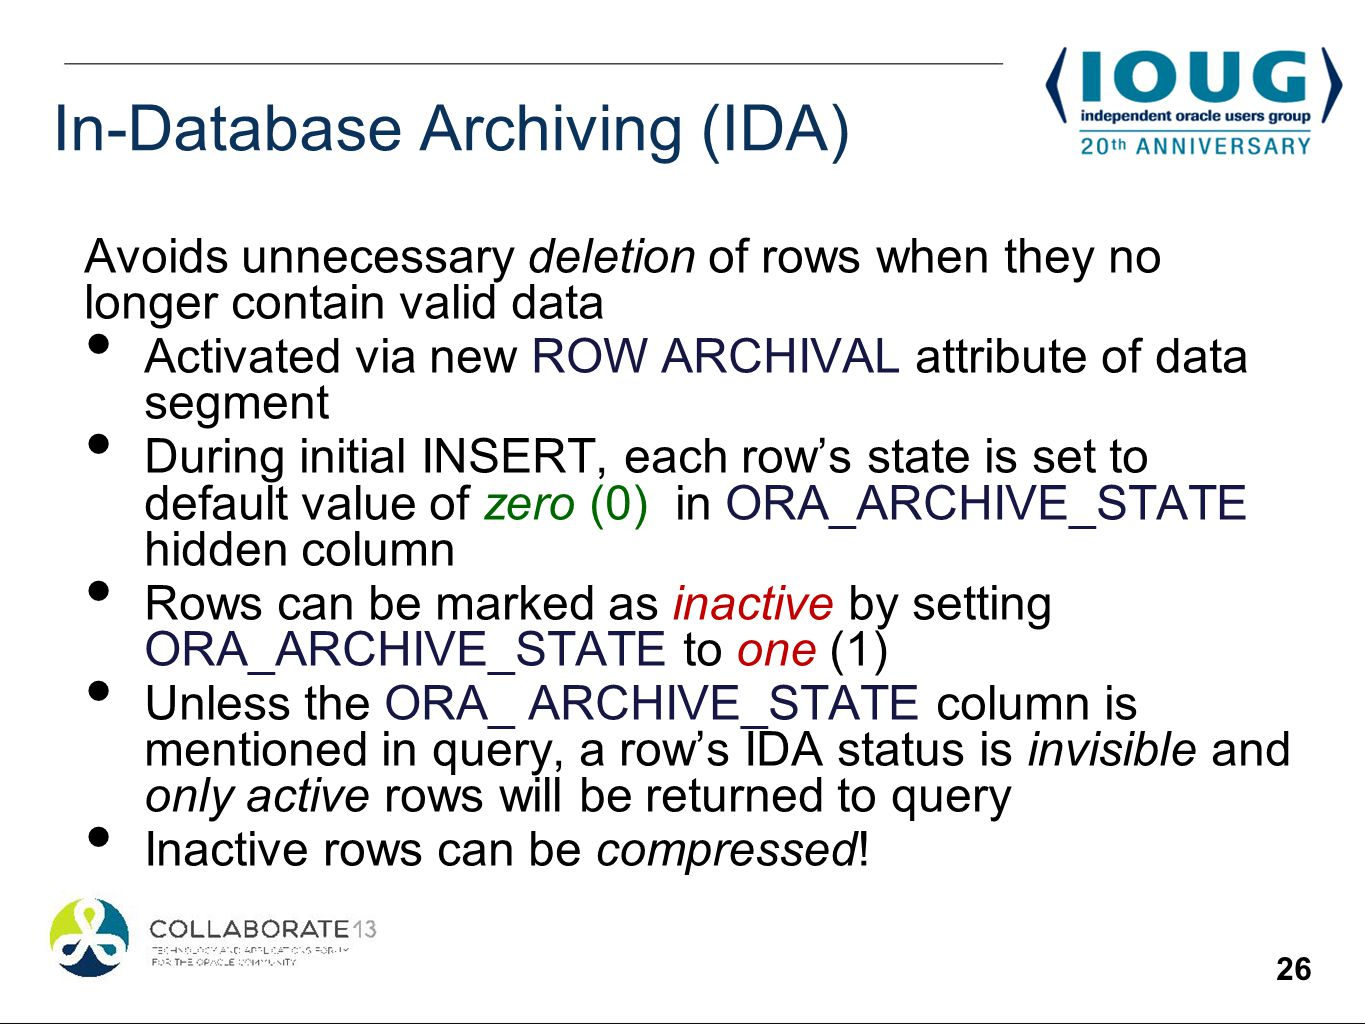 26 In-Database Archiving (IDA) Avoids unnecessary deletion of rows when they no longer contain valid data Activated via new ROW ARCHIVAL attribute of data segment During initial INSERT, each rows state is set to default value of zero (0) in ORA_ARCHIVE_STATE hidden column Rows can be marked as inactive by setting ORA_ARCHIVE_STATE to one (1) Unless the ORA_ ARCHIVE_STATE column is mentioned in query, a rows IDA status is invisible and only active rows will be returned to query Inactive rows can be compressed!